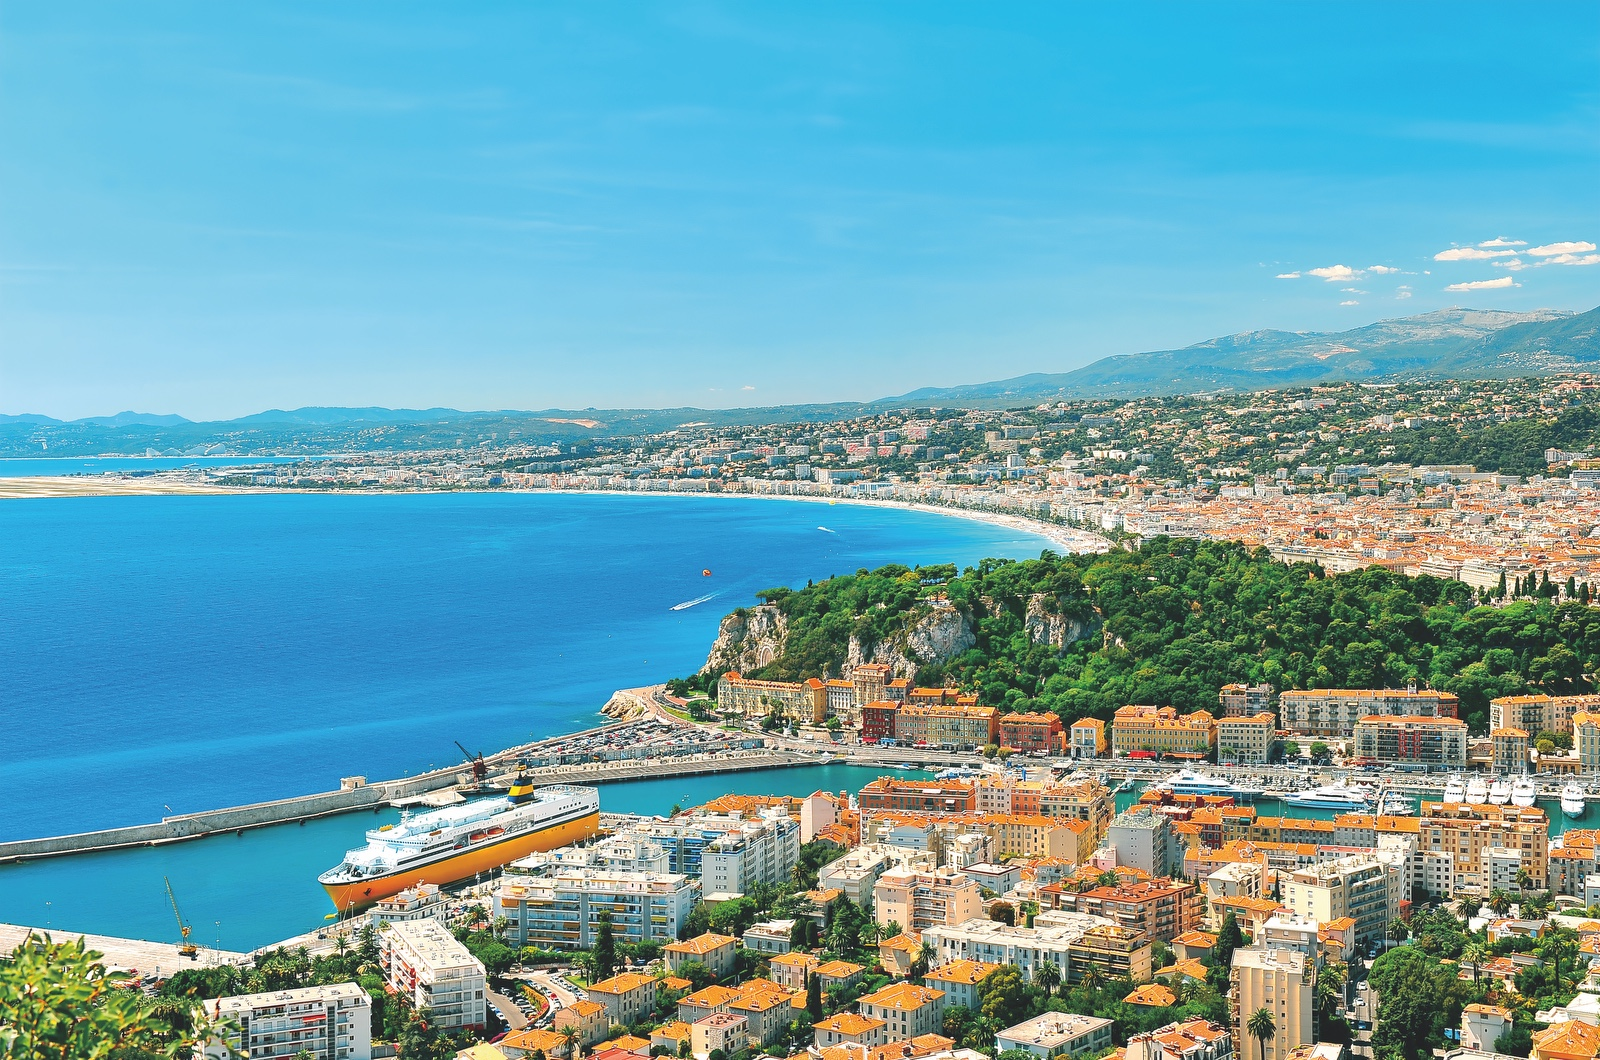 Panoramic view of Nice, Mediterranean Sea, France, French riviera